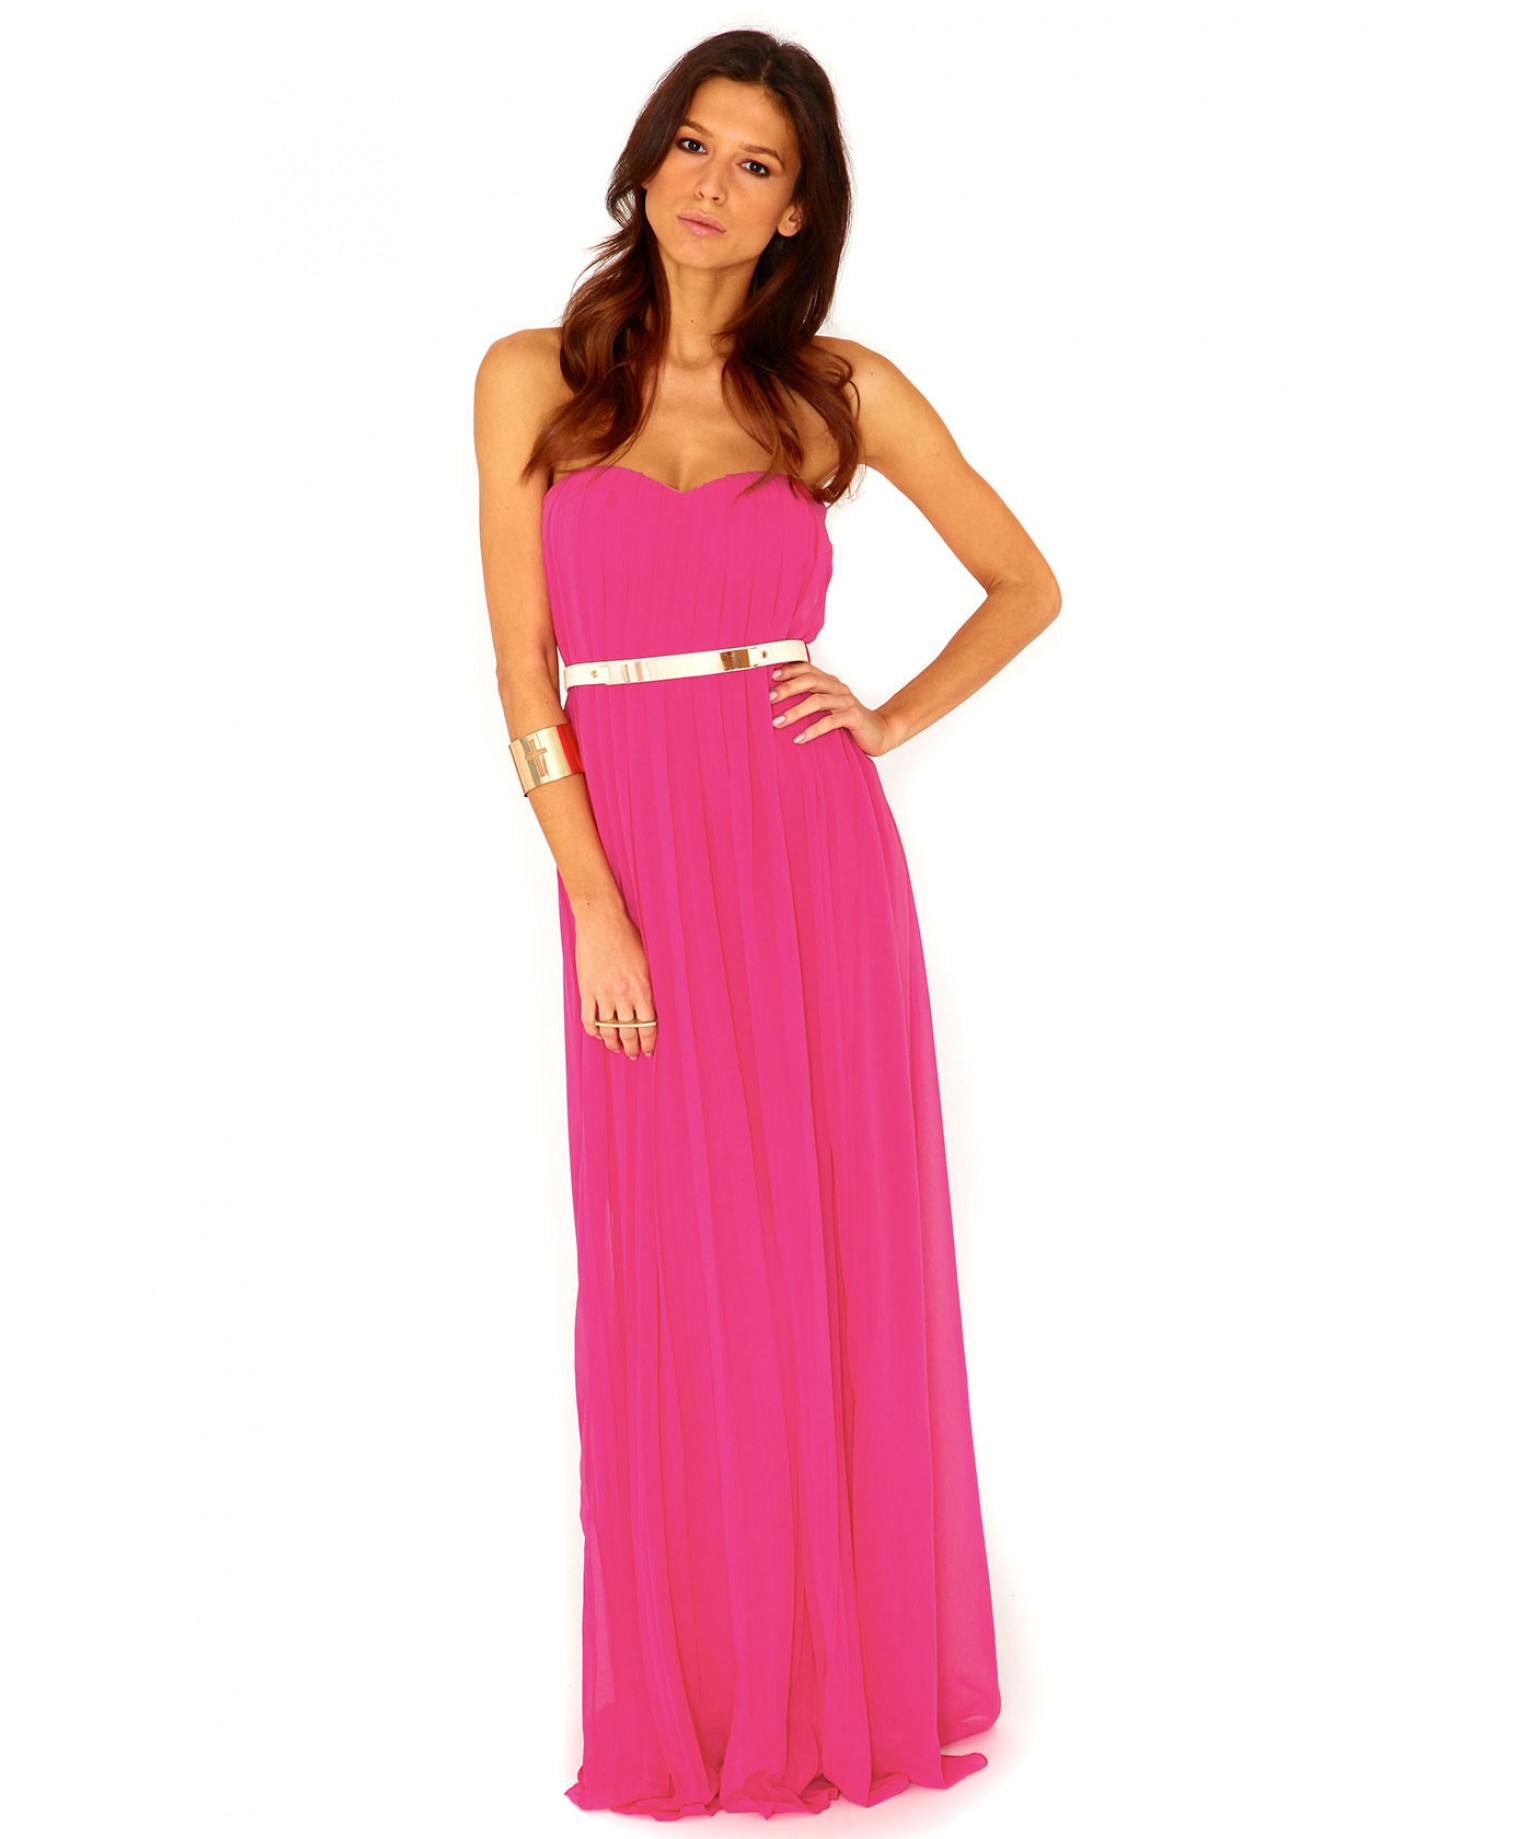 Lyst - Missguided Abelone Pleated Bandeau Maxi Dress in Fuchsia in Pink